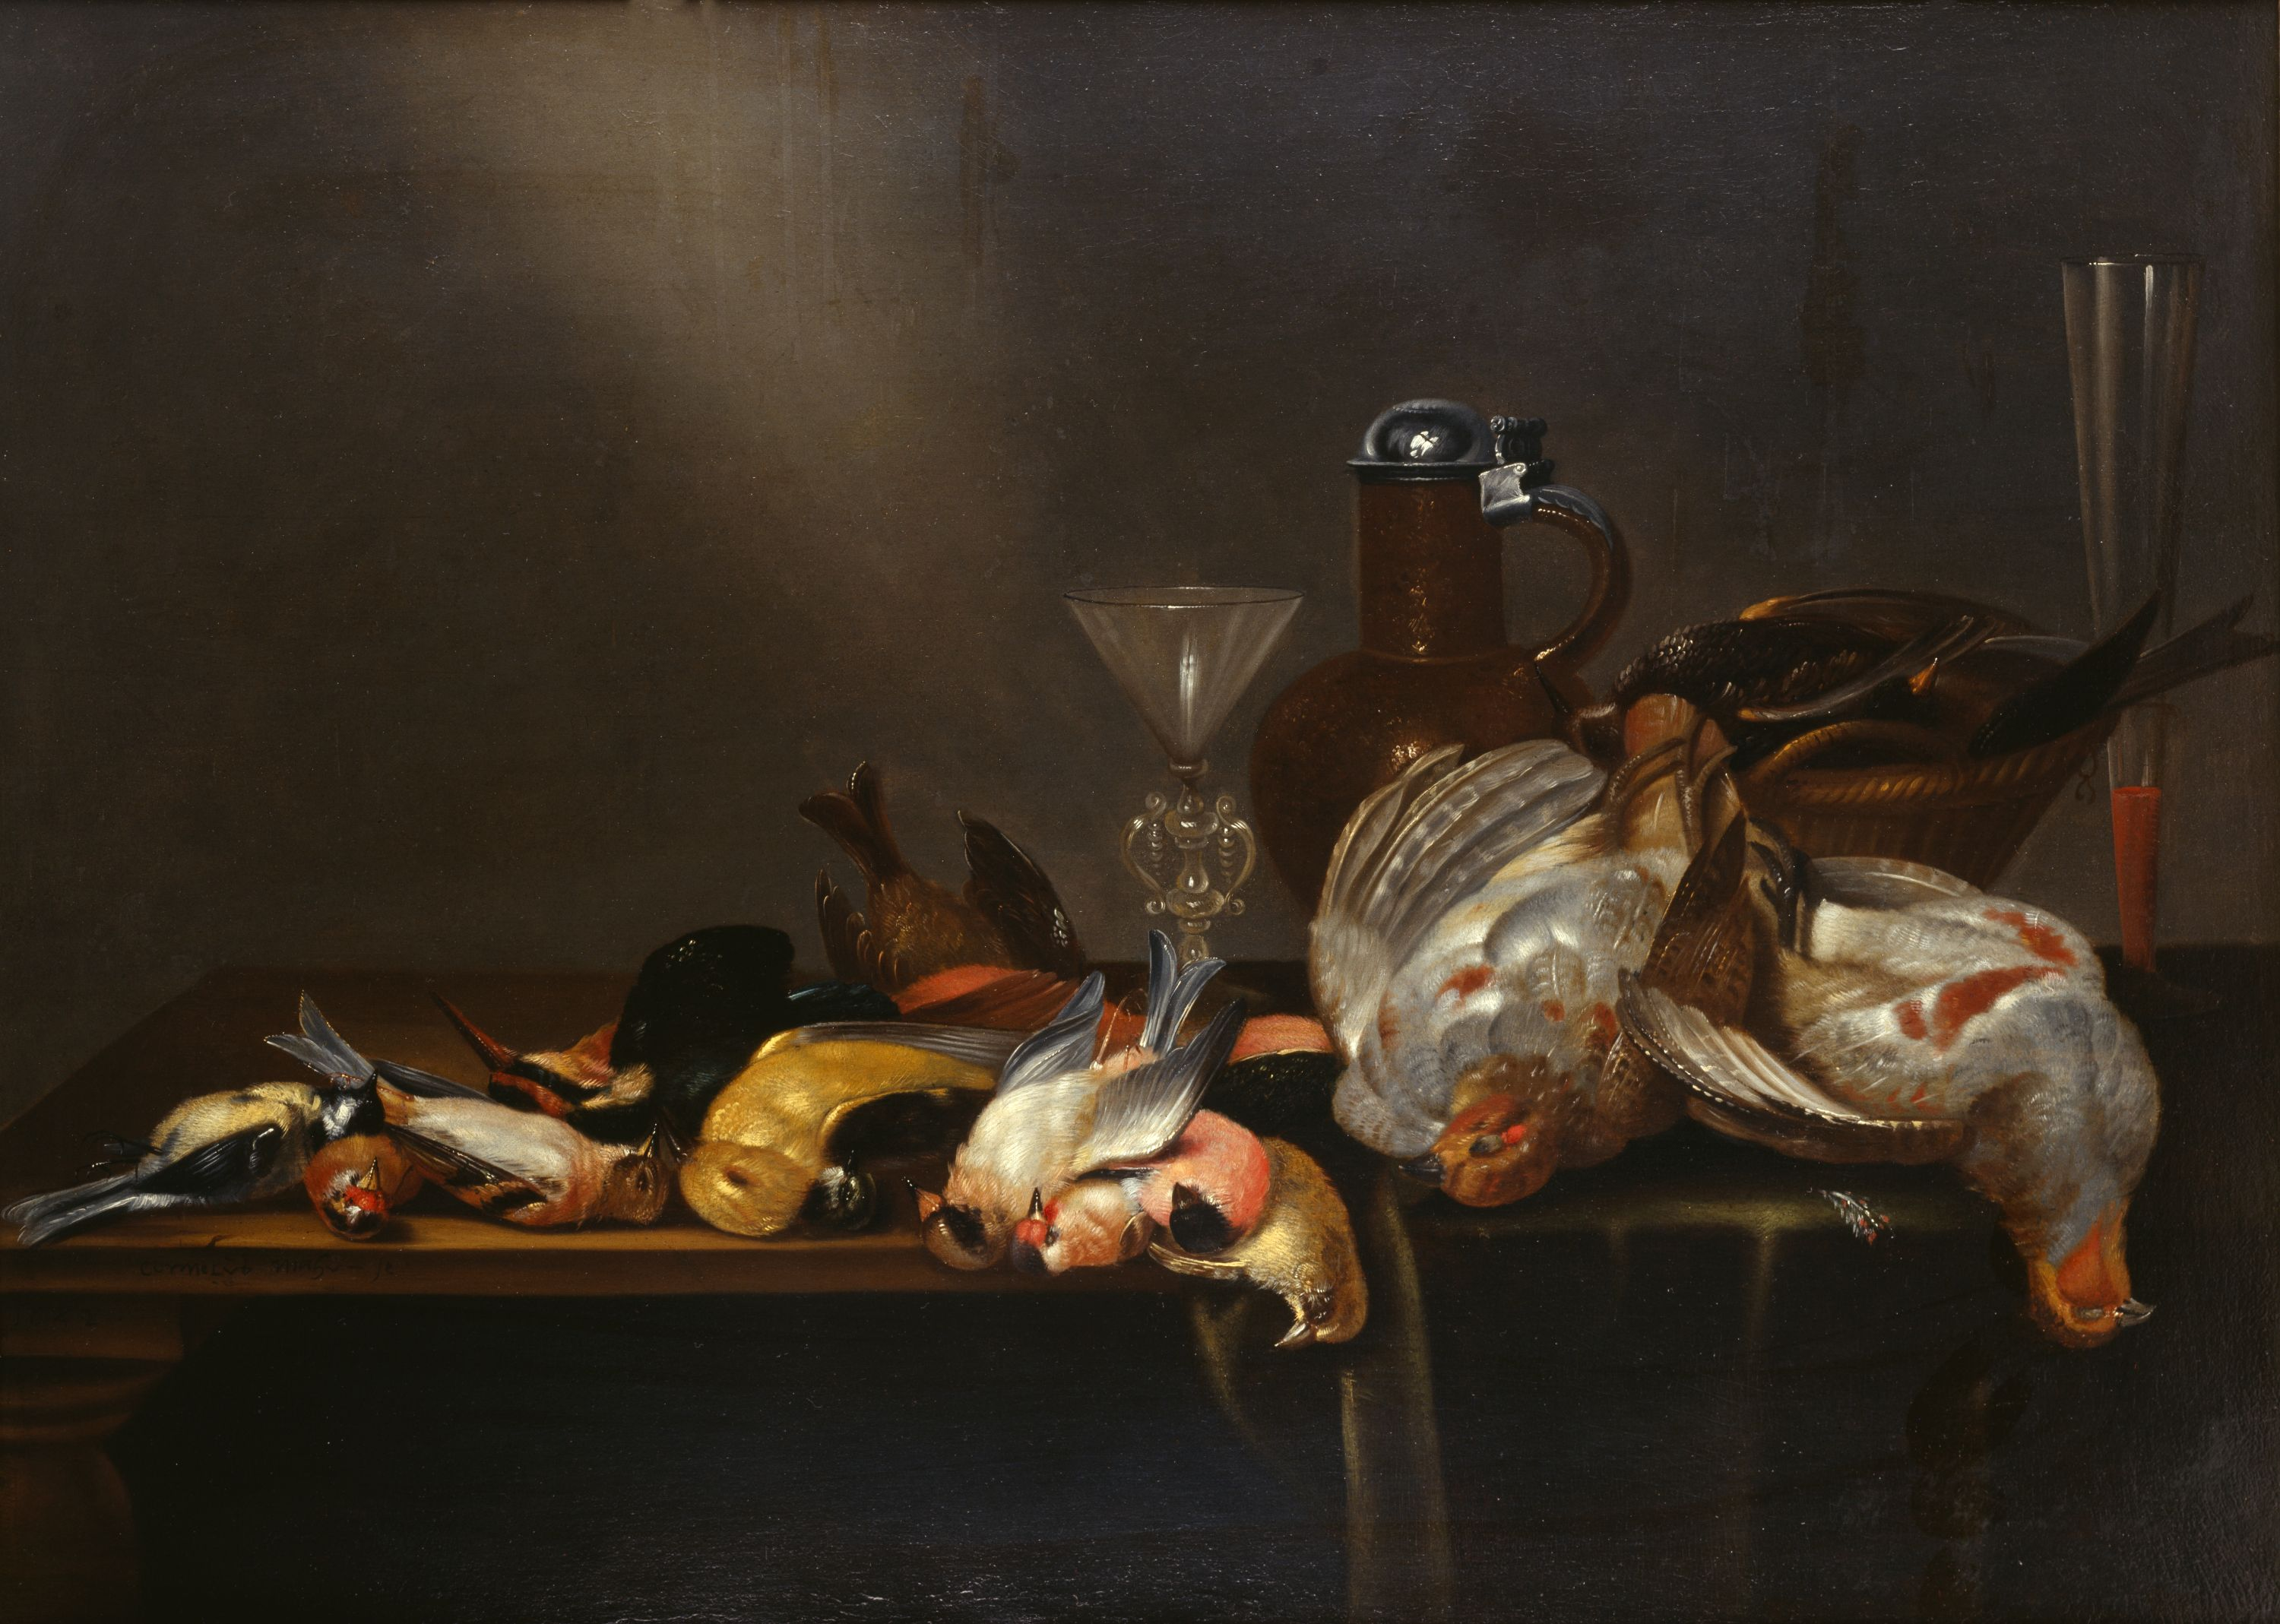 In the life of a Southern hunter, this seems to be a very familiar scene. Still-life paintings with game birds were immensely popular in the 17th century. Among the types of birds depicted are European Goldfinches, Golden Orioles, and Grey Partridges. // Dutch Gallery